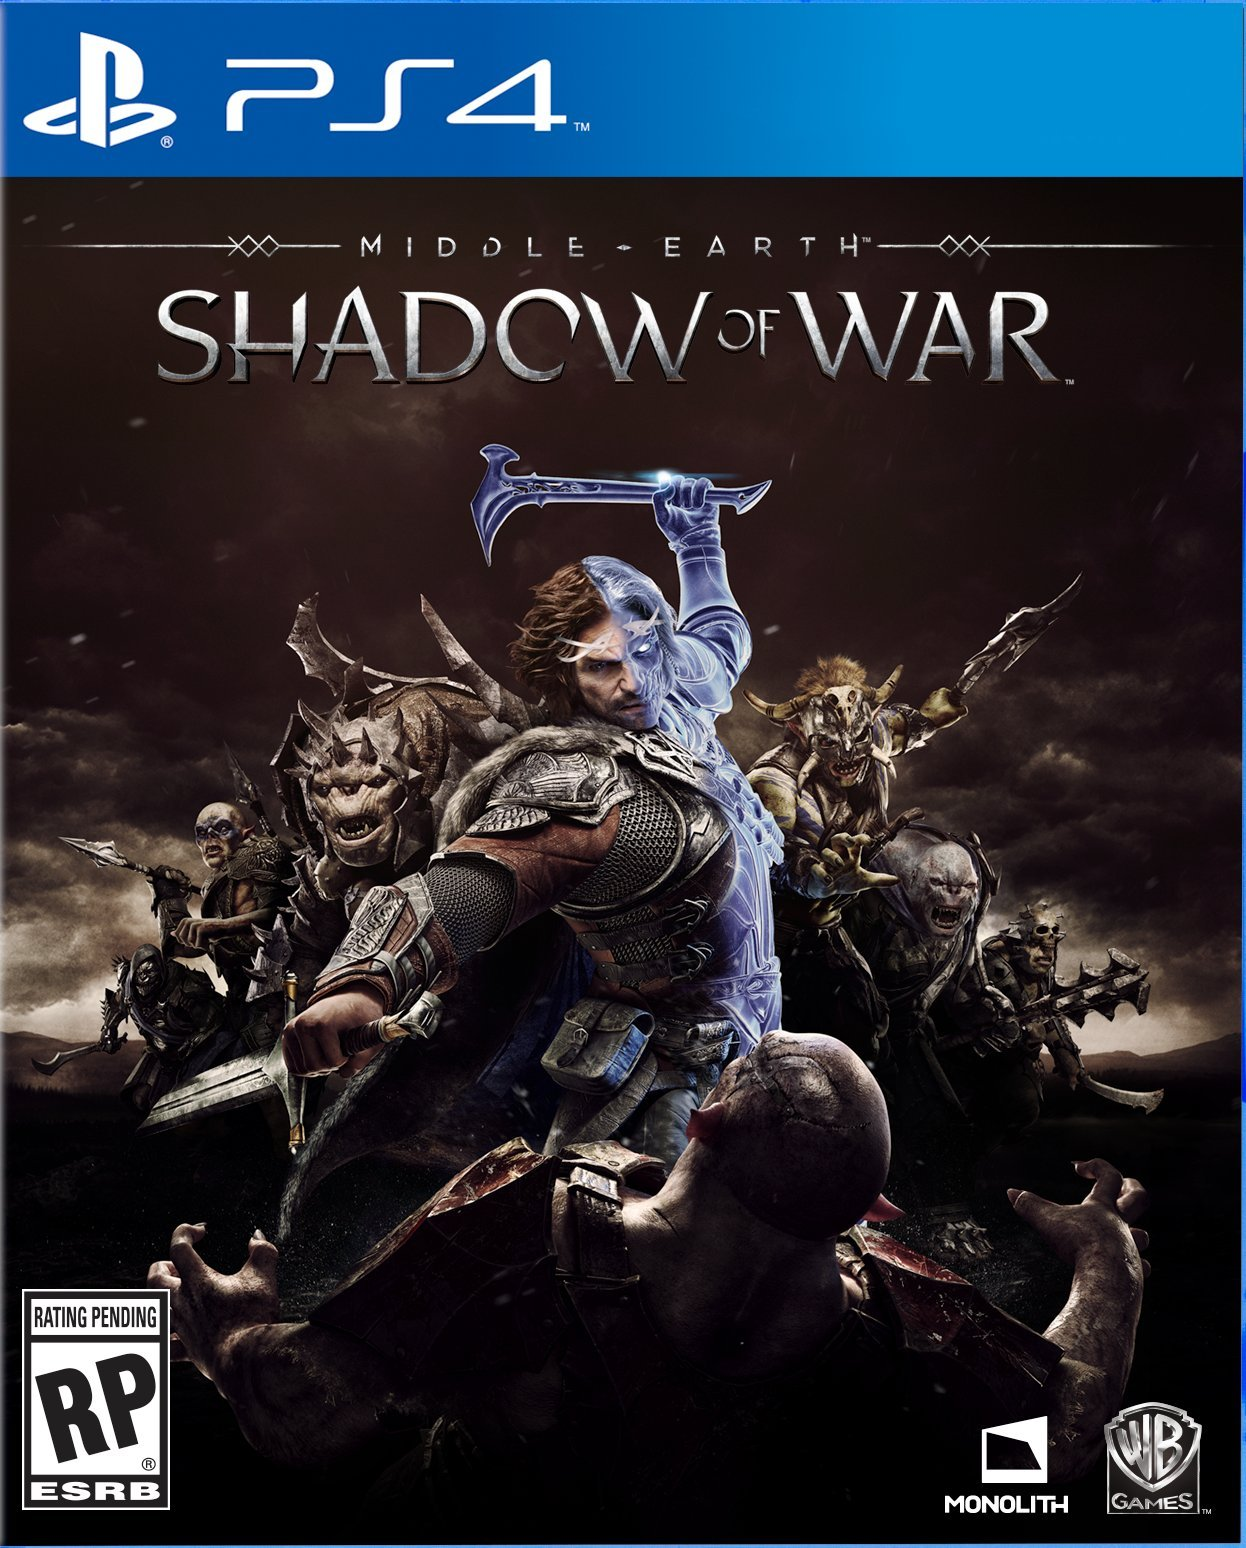 Middle-earth: Shadow of War Languages: French, Italian, German, Castilian Spanish, Latin American Spanish, Brazilian Portuguese, Polish, Russian, Japanese, Korean, Traditional Chinese, Simplified Chinese, and Arabic Platforms: PS4 and Xbox One